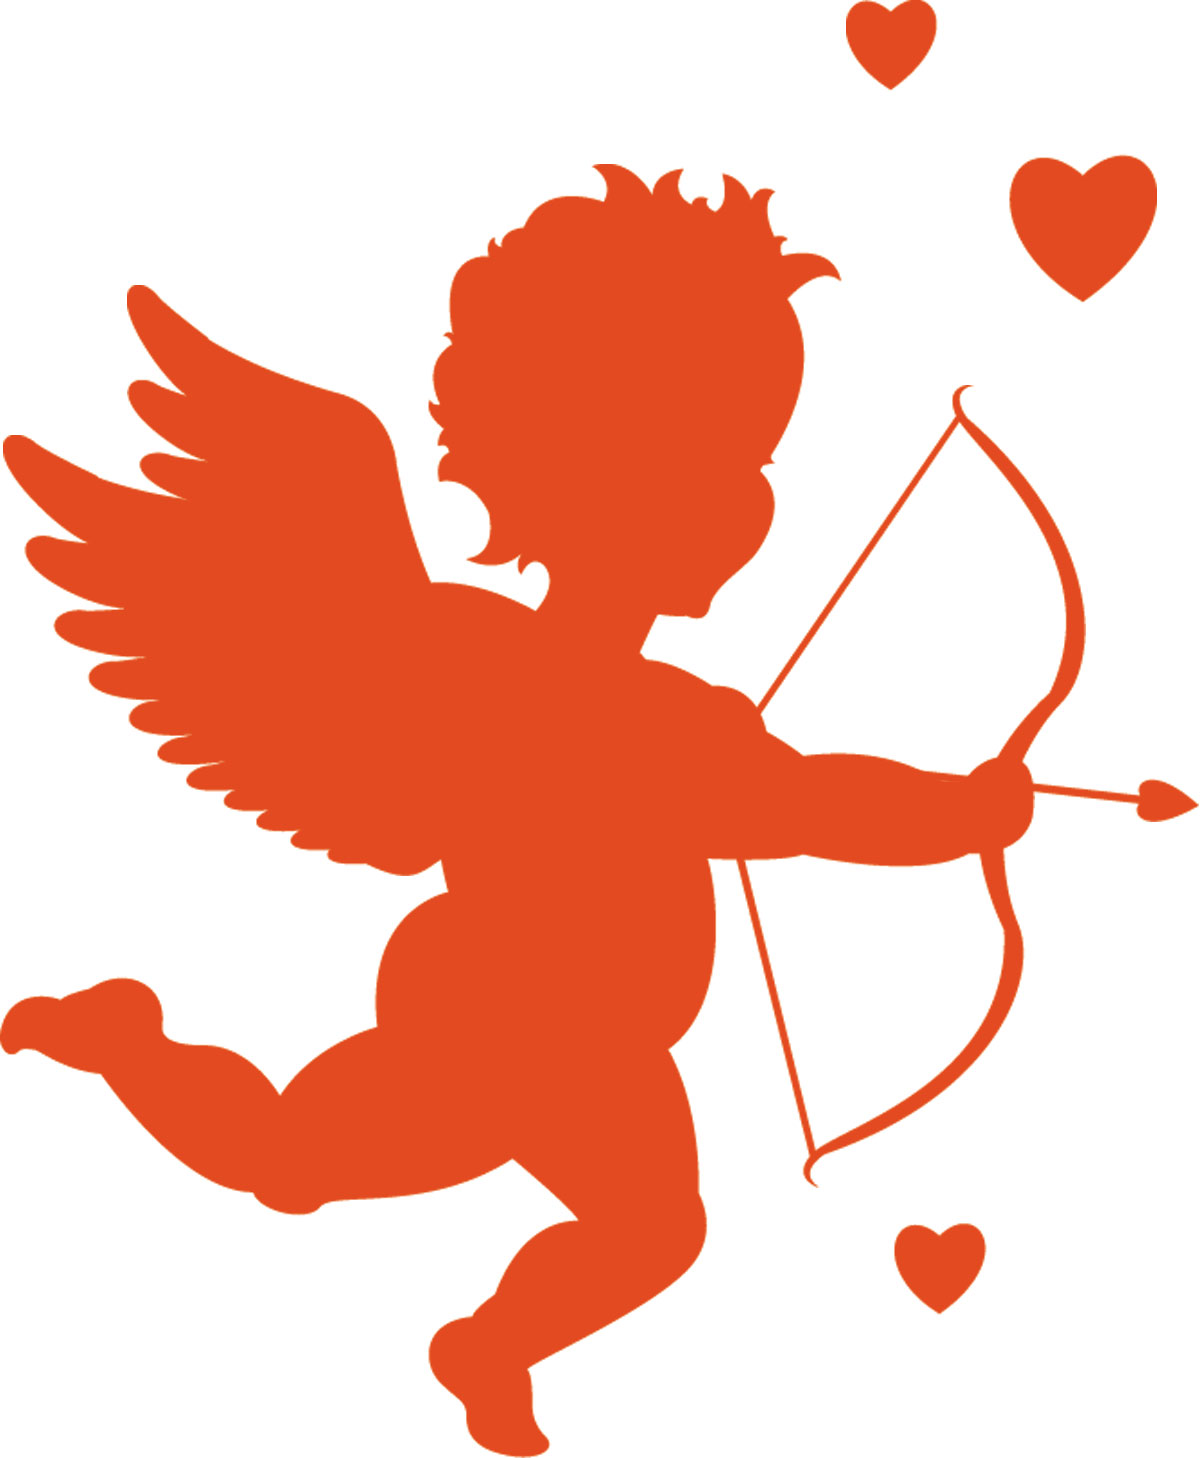 Th N T Nh Y U Cupid